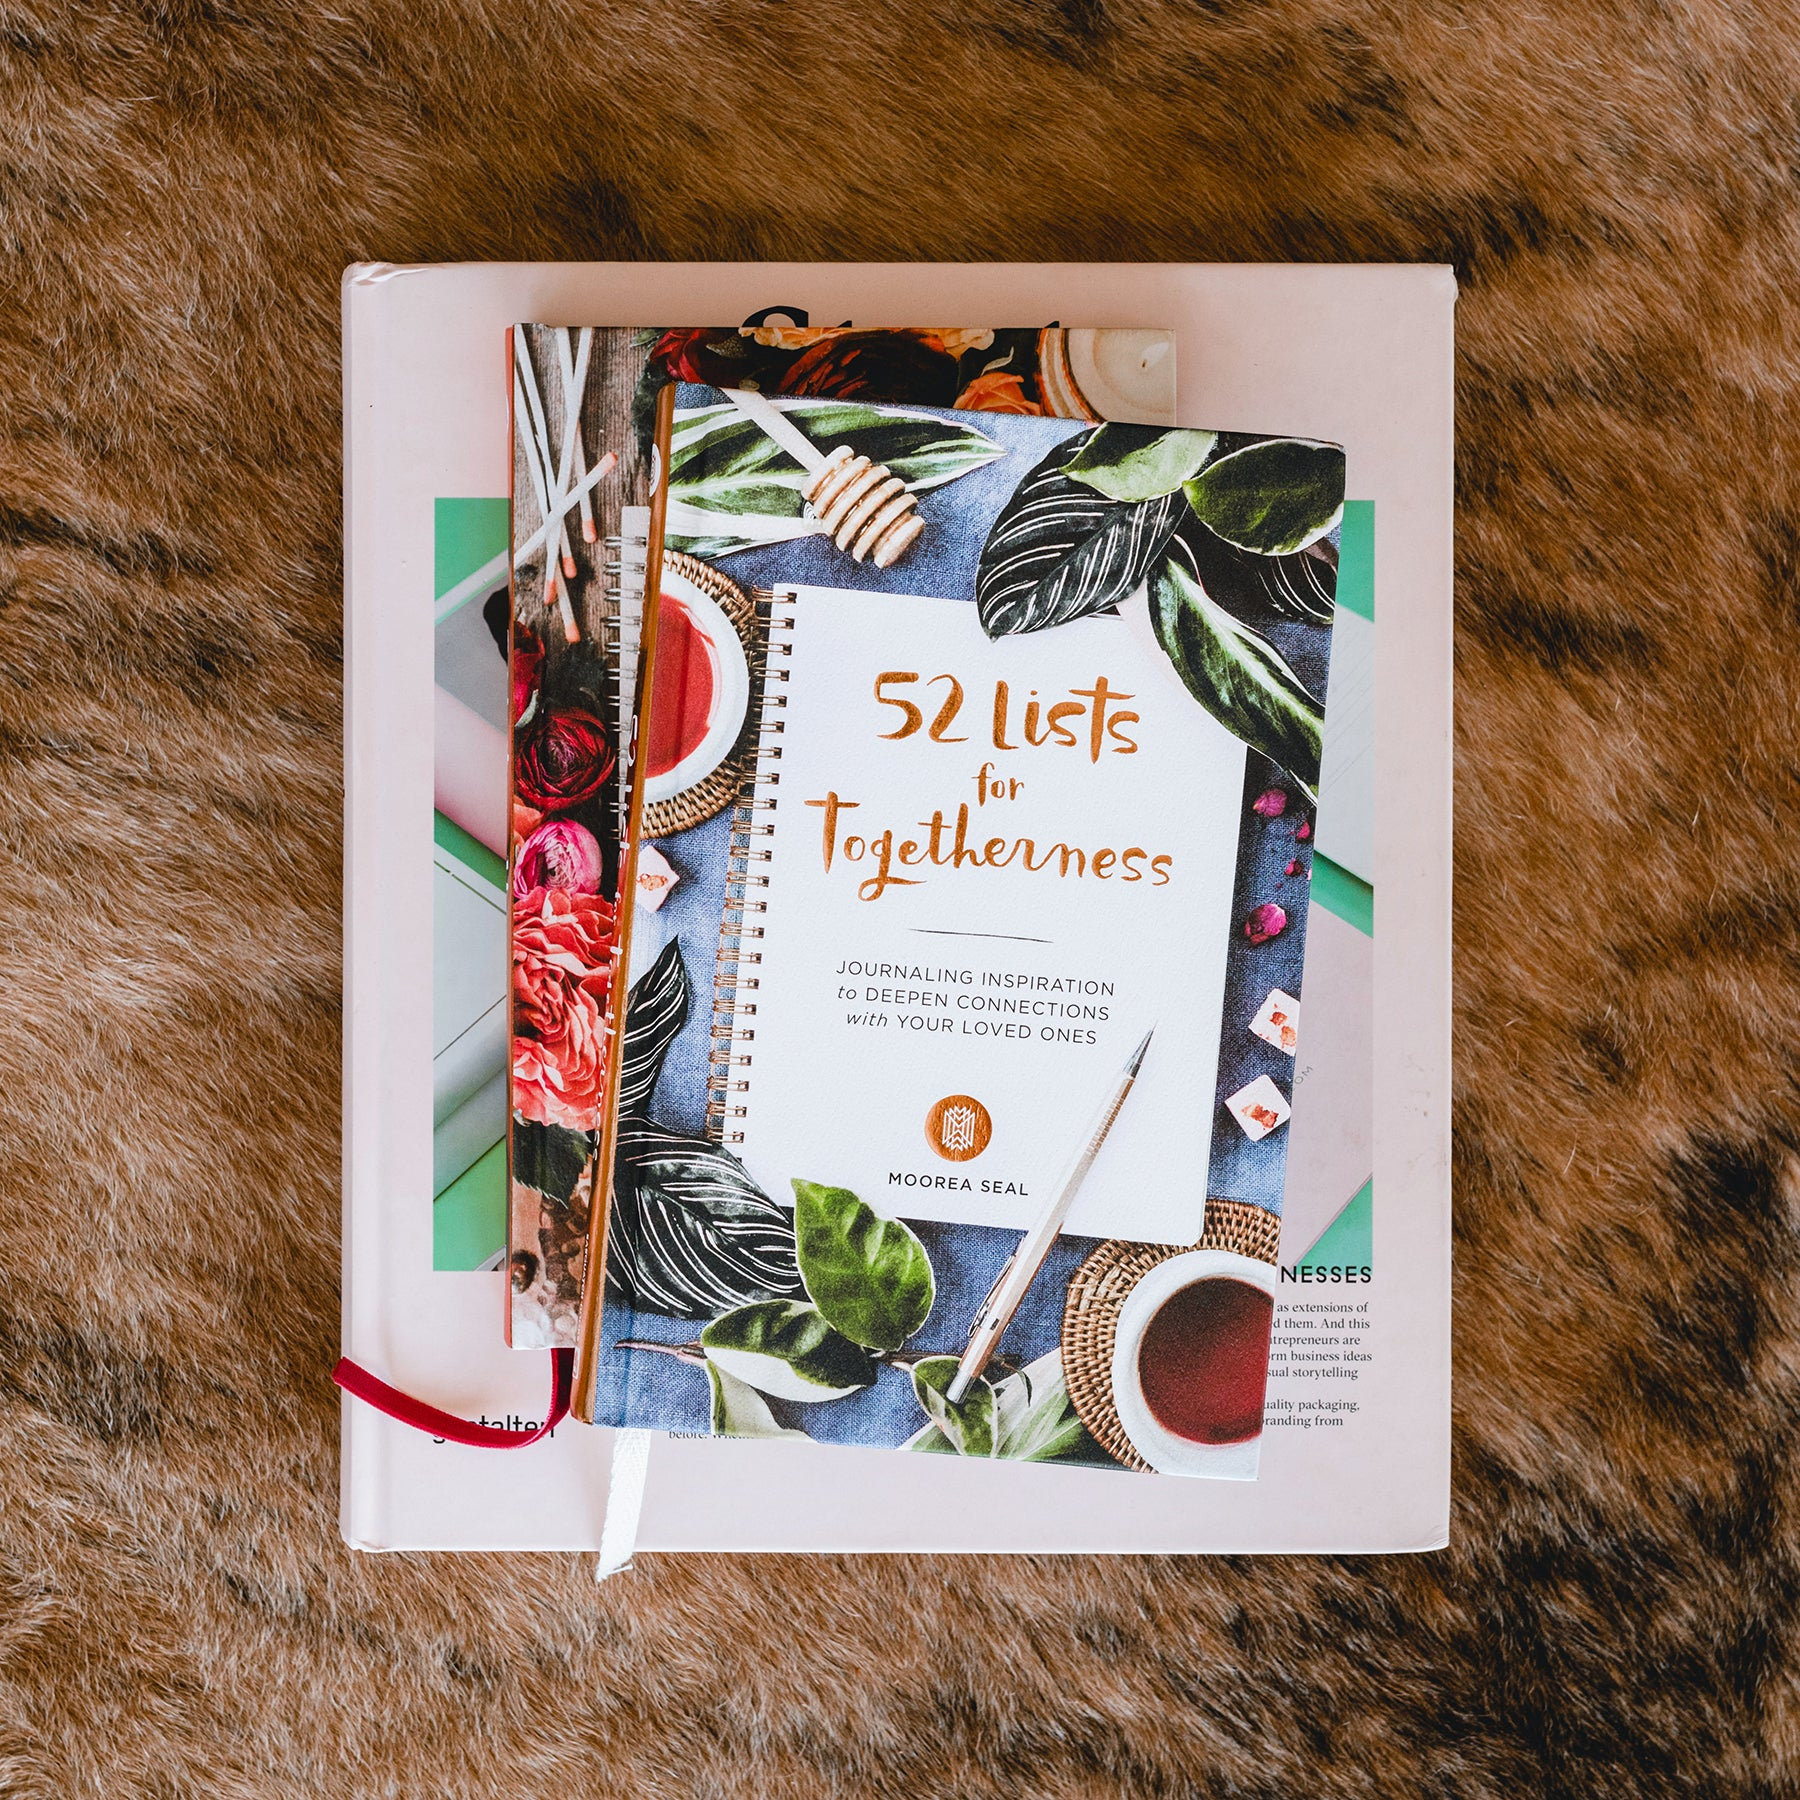 A book titled 52 Lists for Togetherness lays on a stack of books set upon a faux fur surface